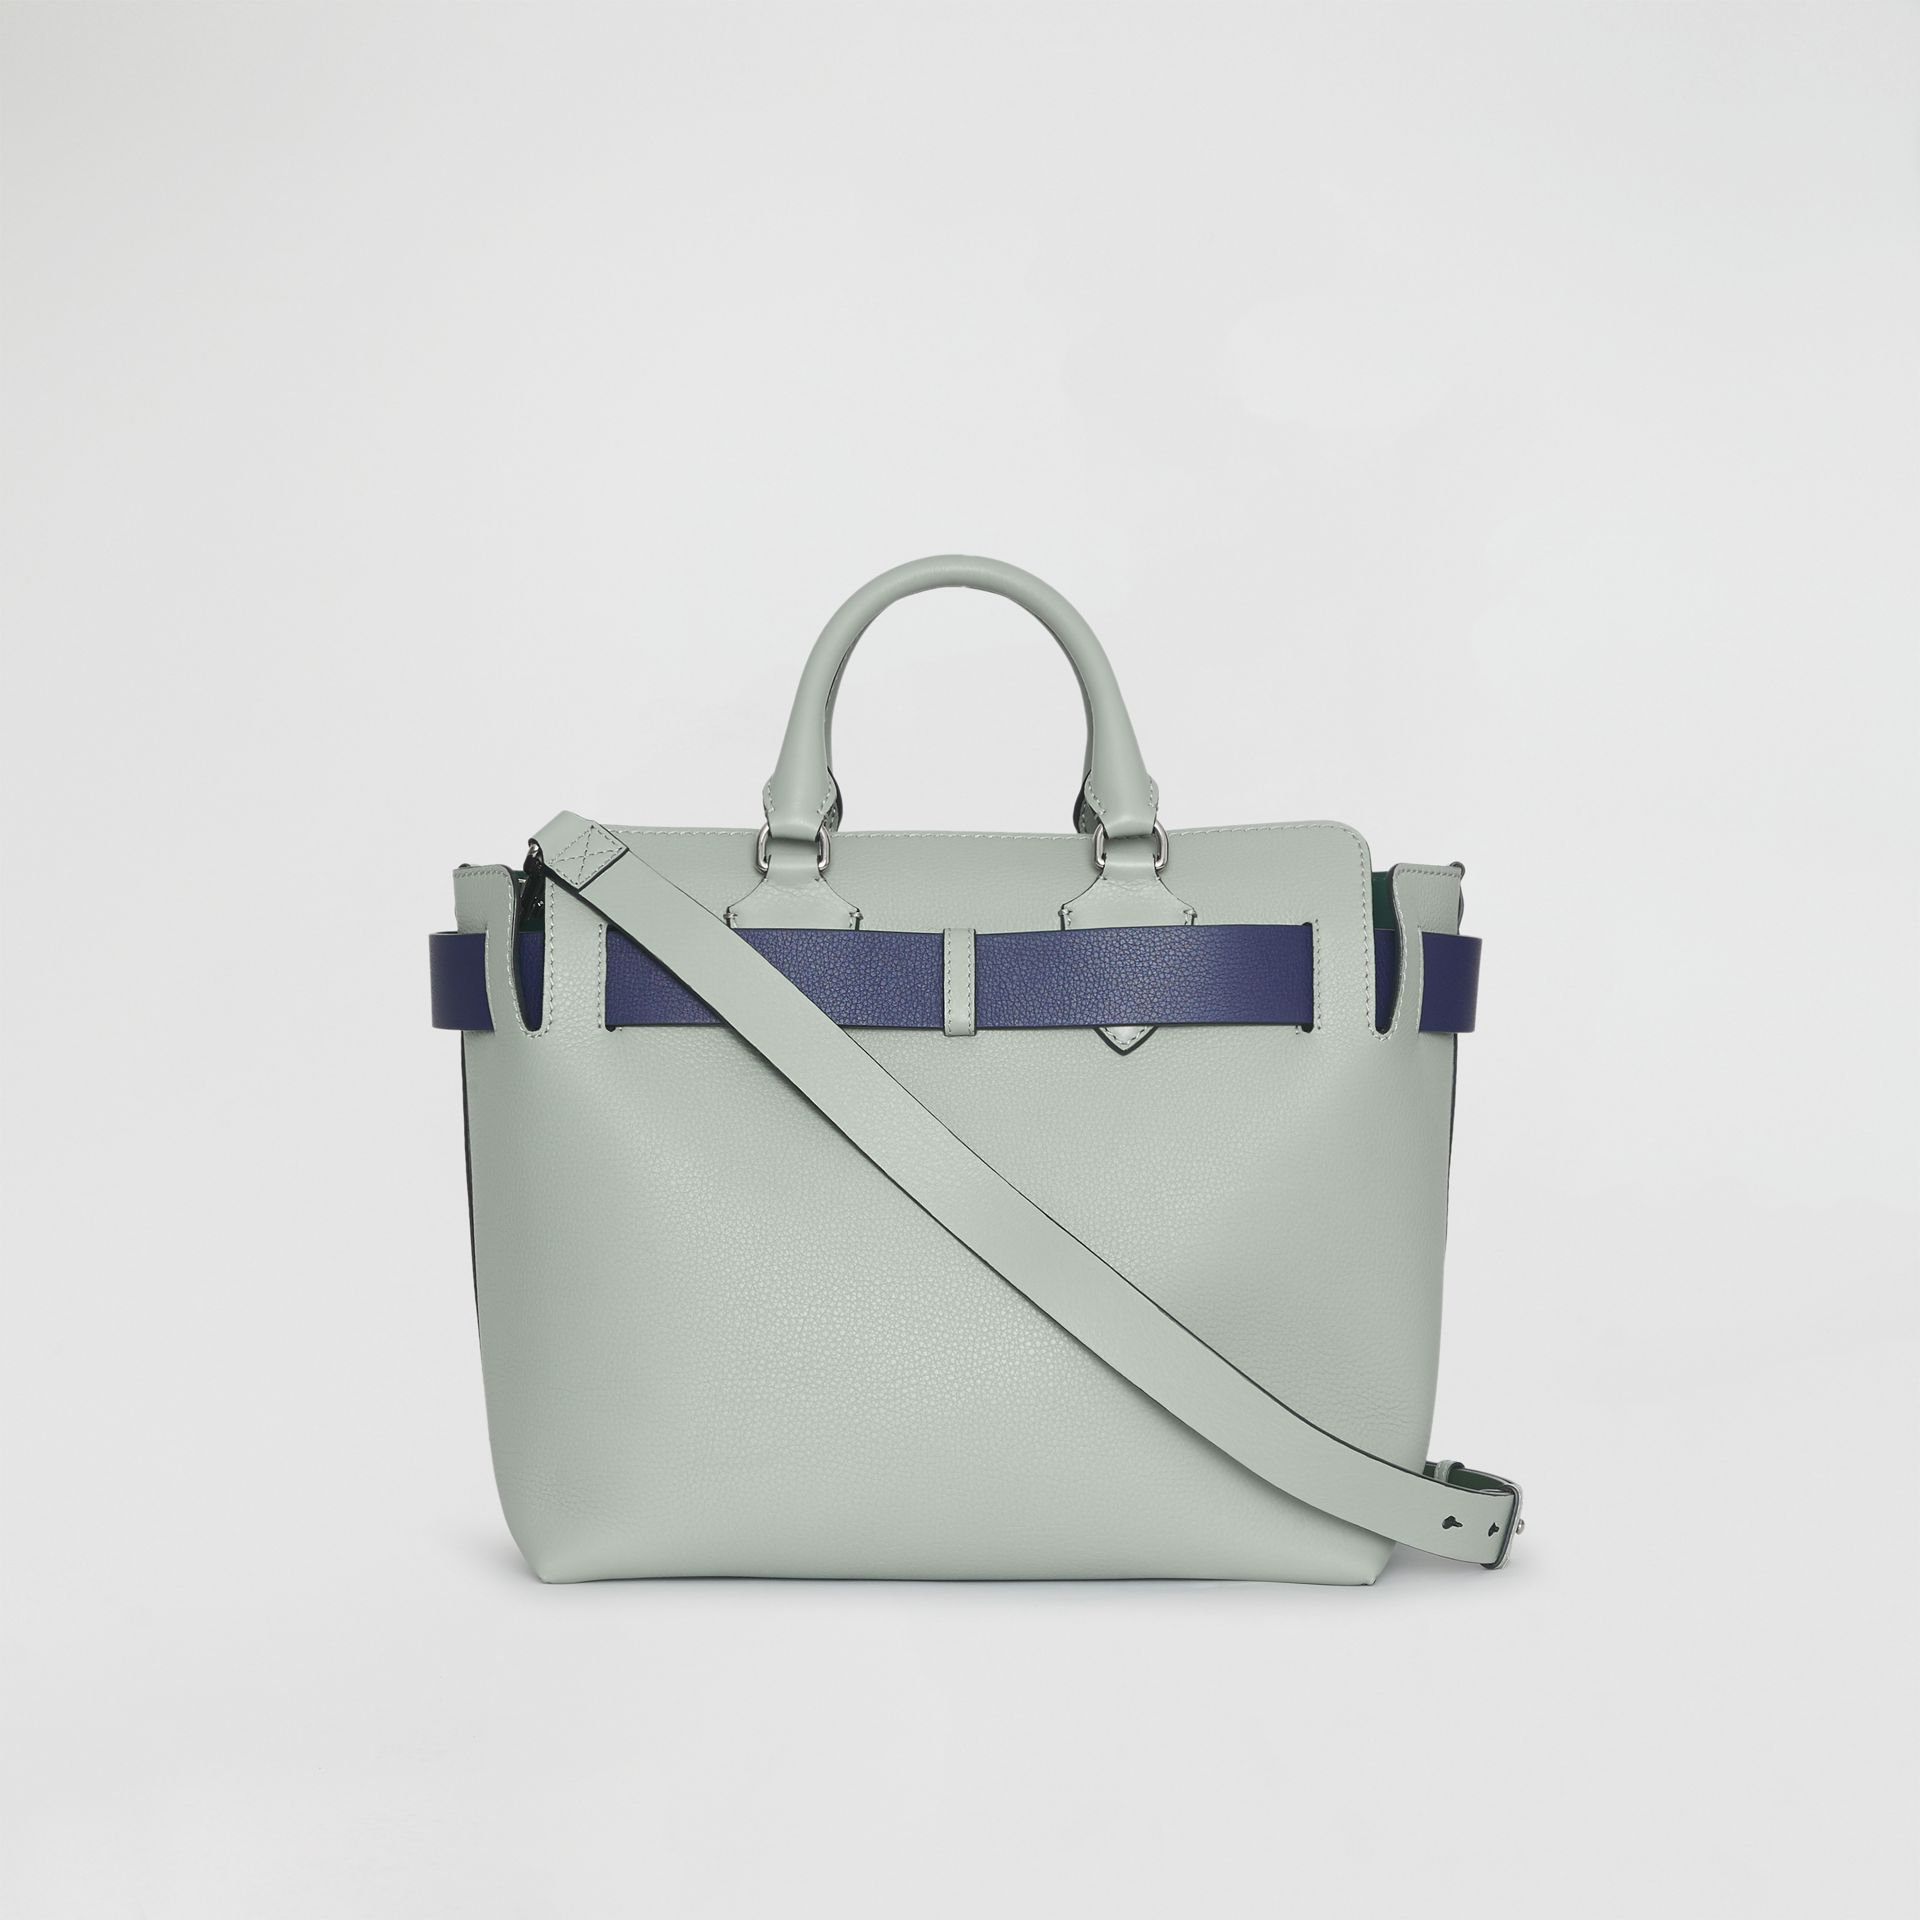 Borsa The Belt media in pelle (Blu Grigio) - Donna | Burberry - immagine della galleria 7